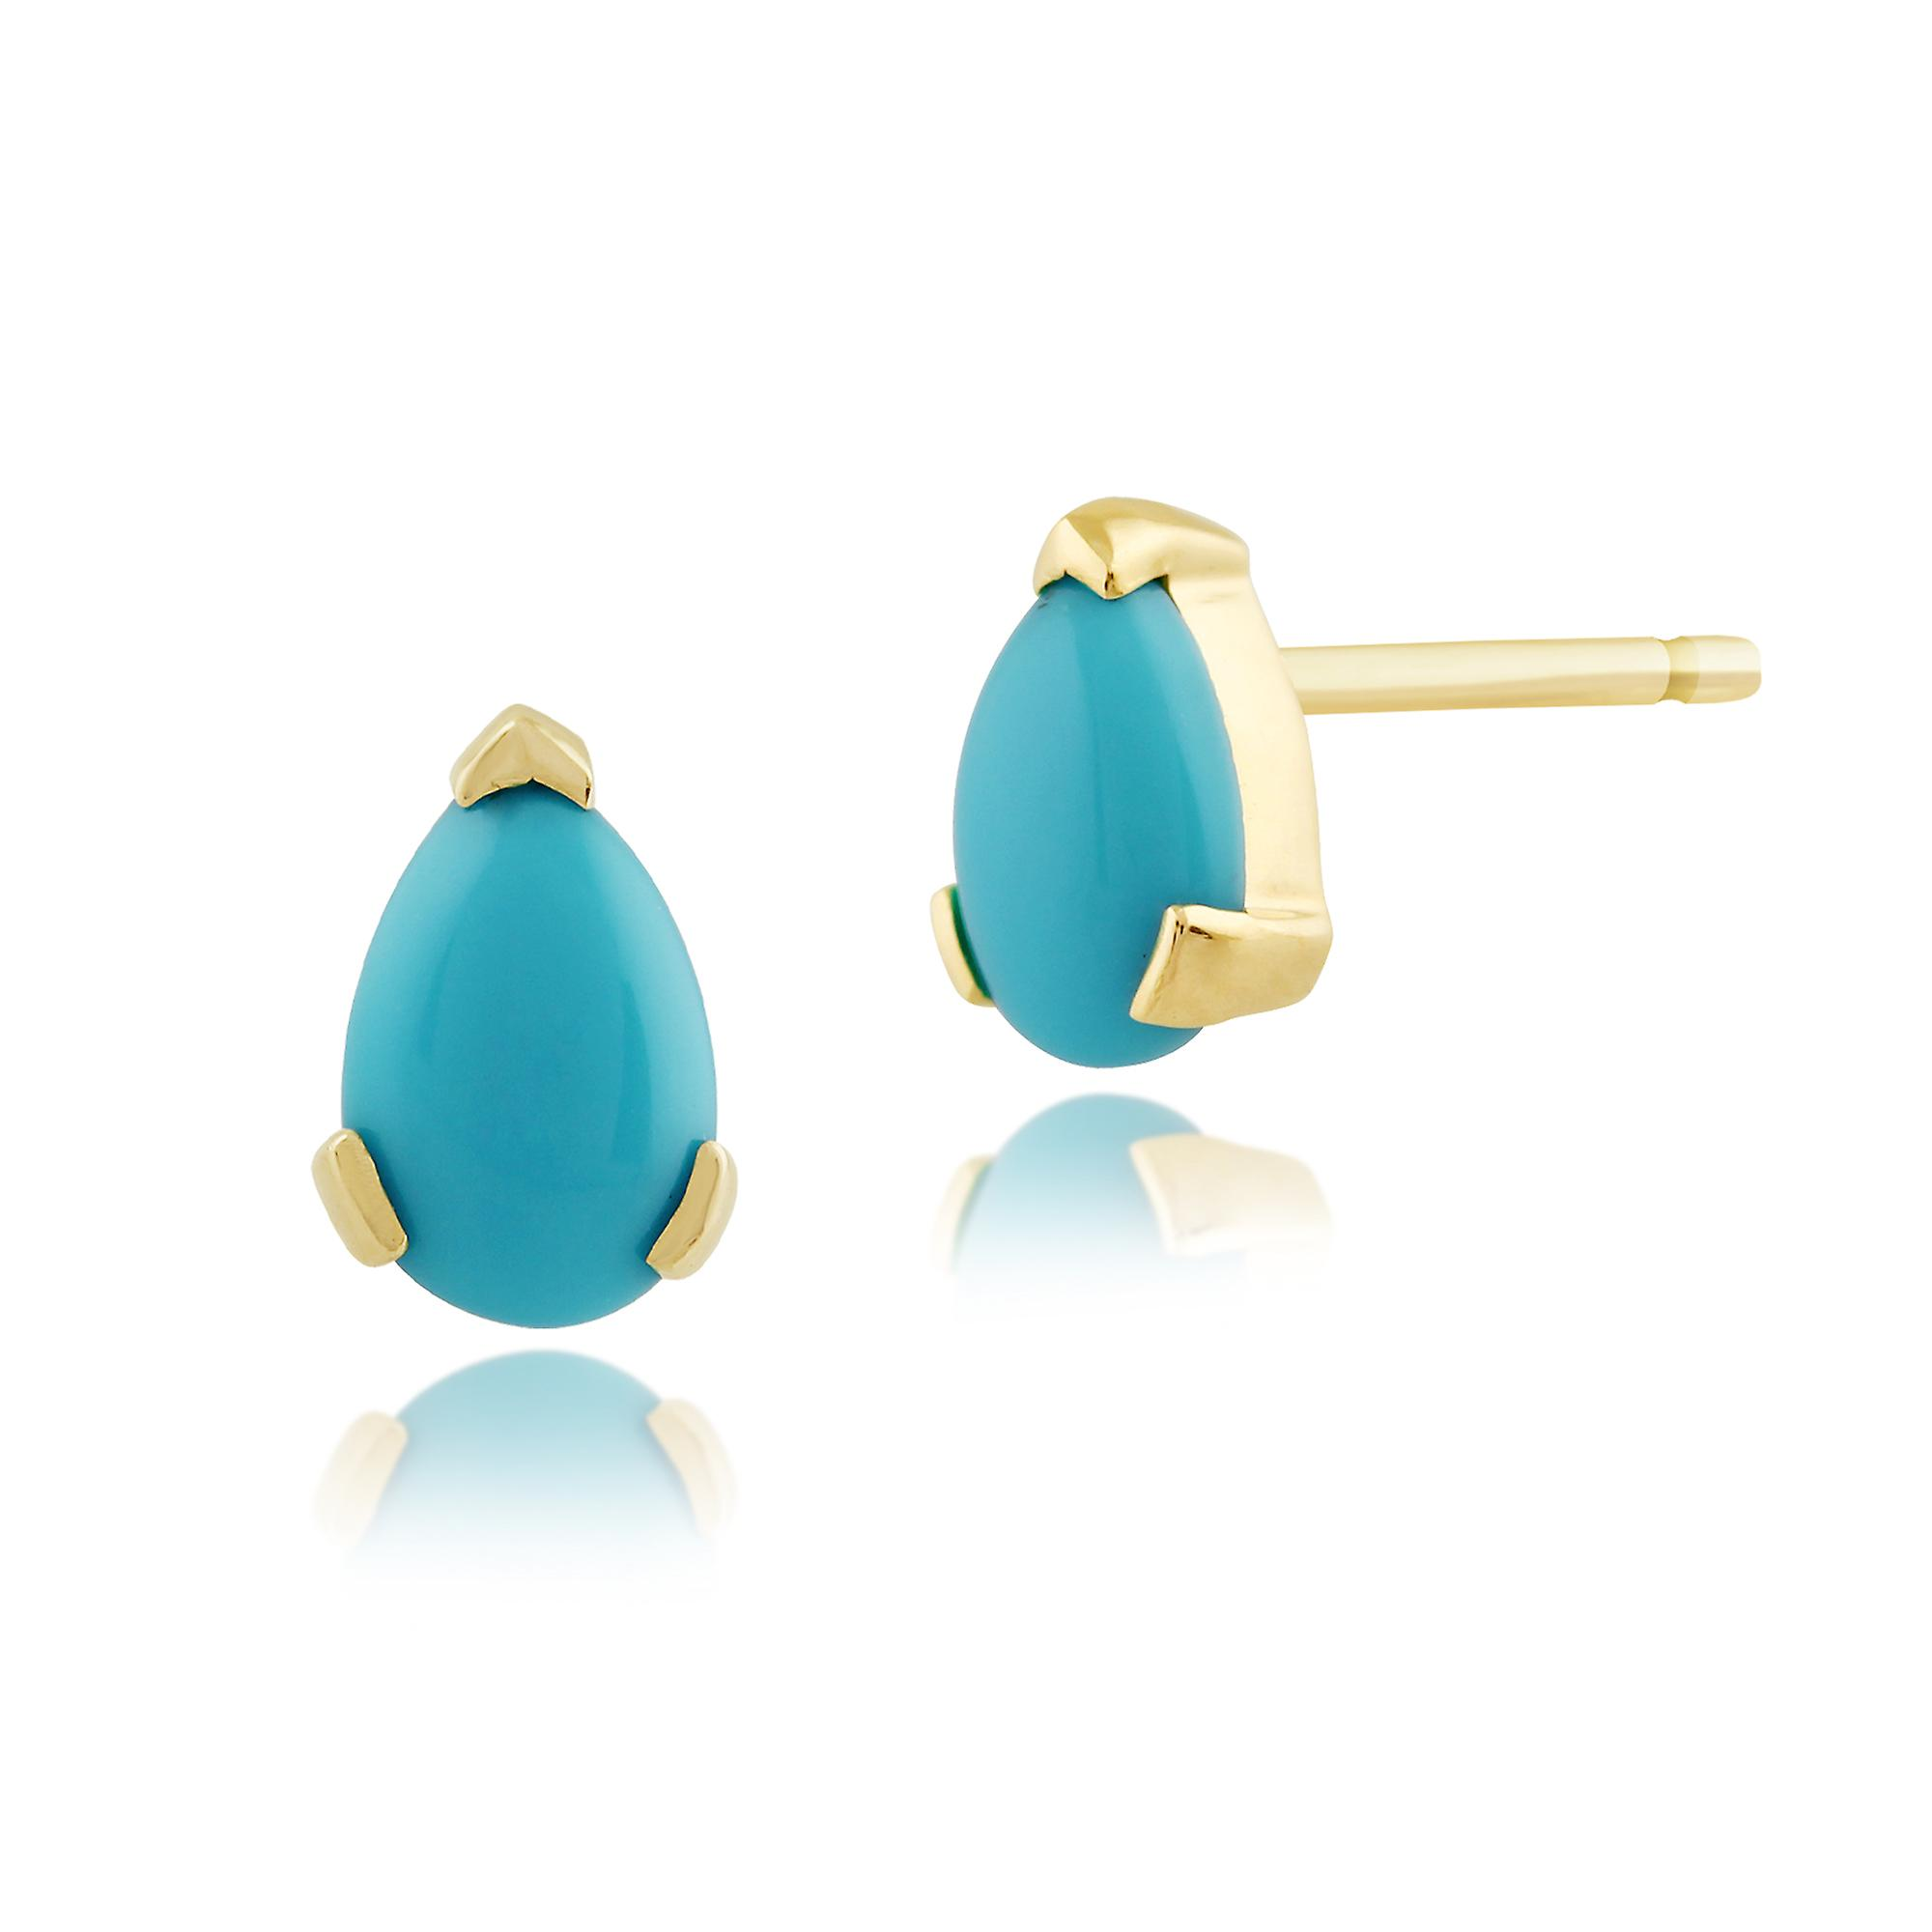 Gemondo 9ct Yellow Gold 0.62ct Pear Turquoise Stud Earrings